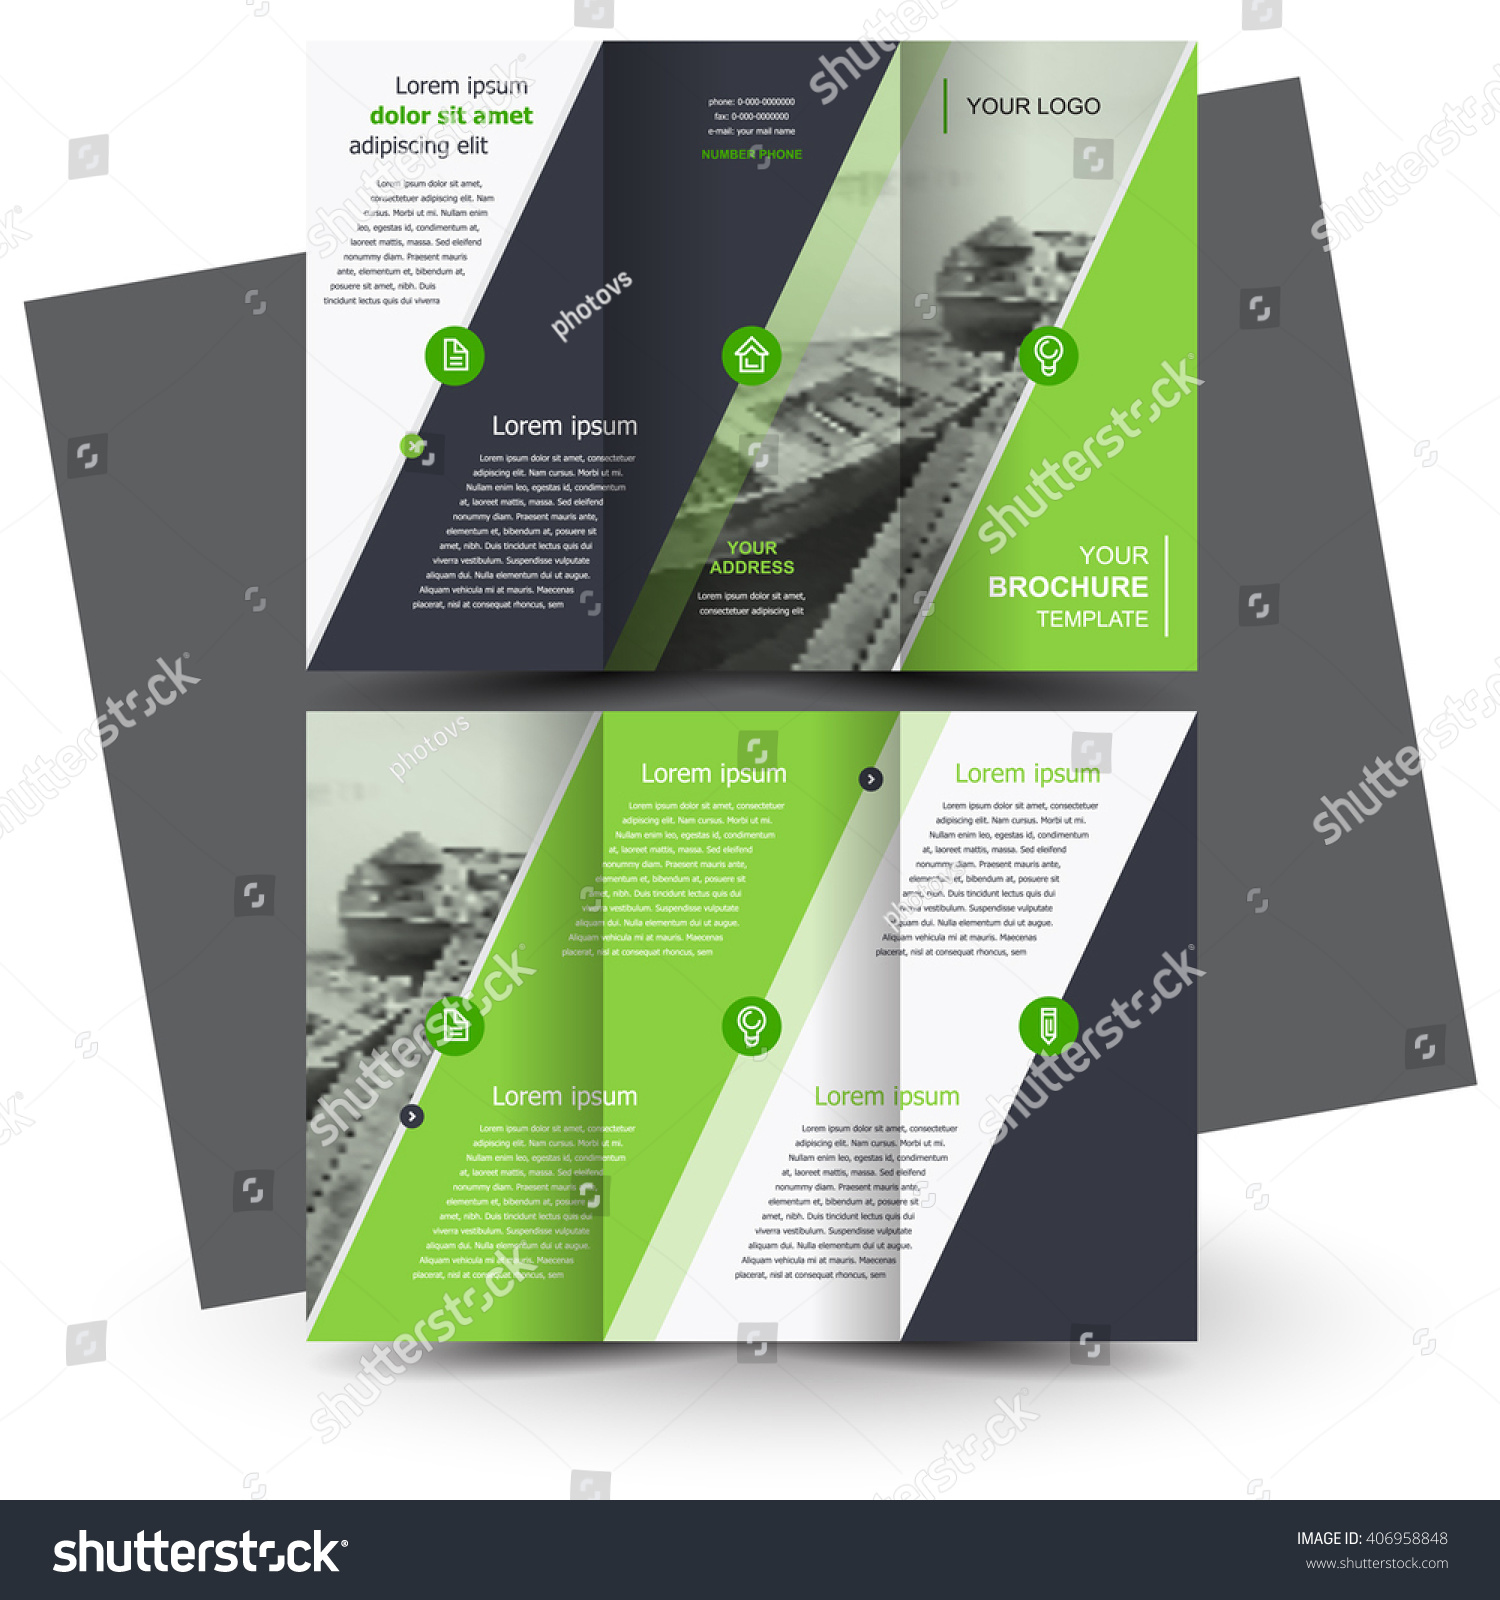 Brochure design business brochure template creative stock for Tri fold business brochure template